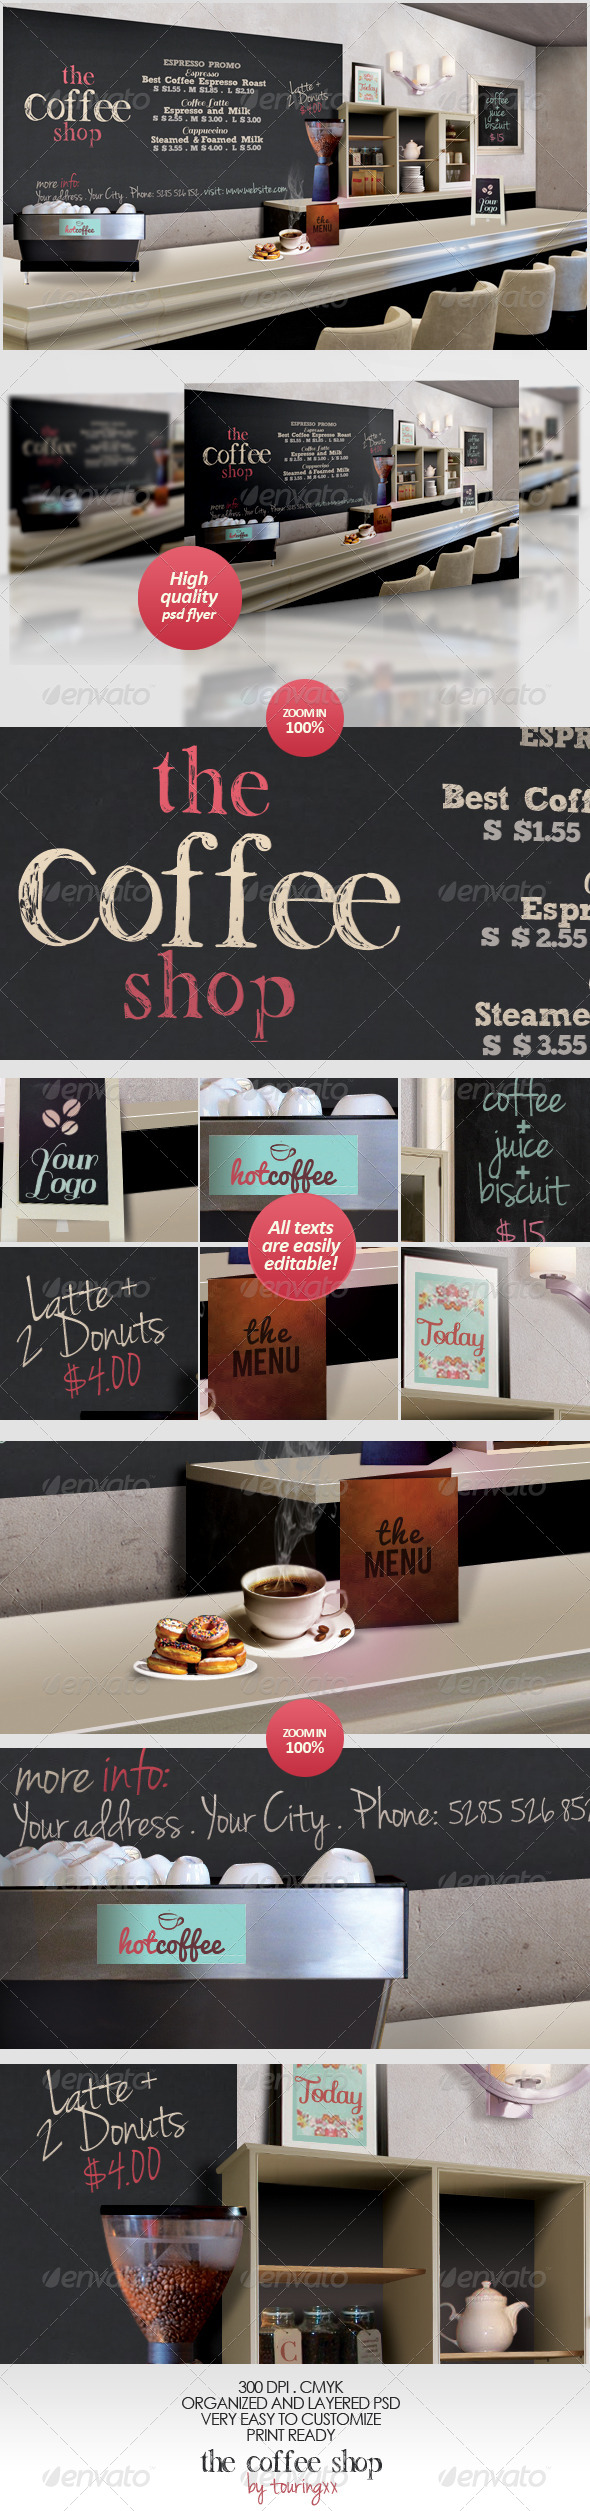 The Coffee Shop Flyer Template - Flyers Print Templates